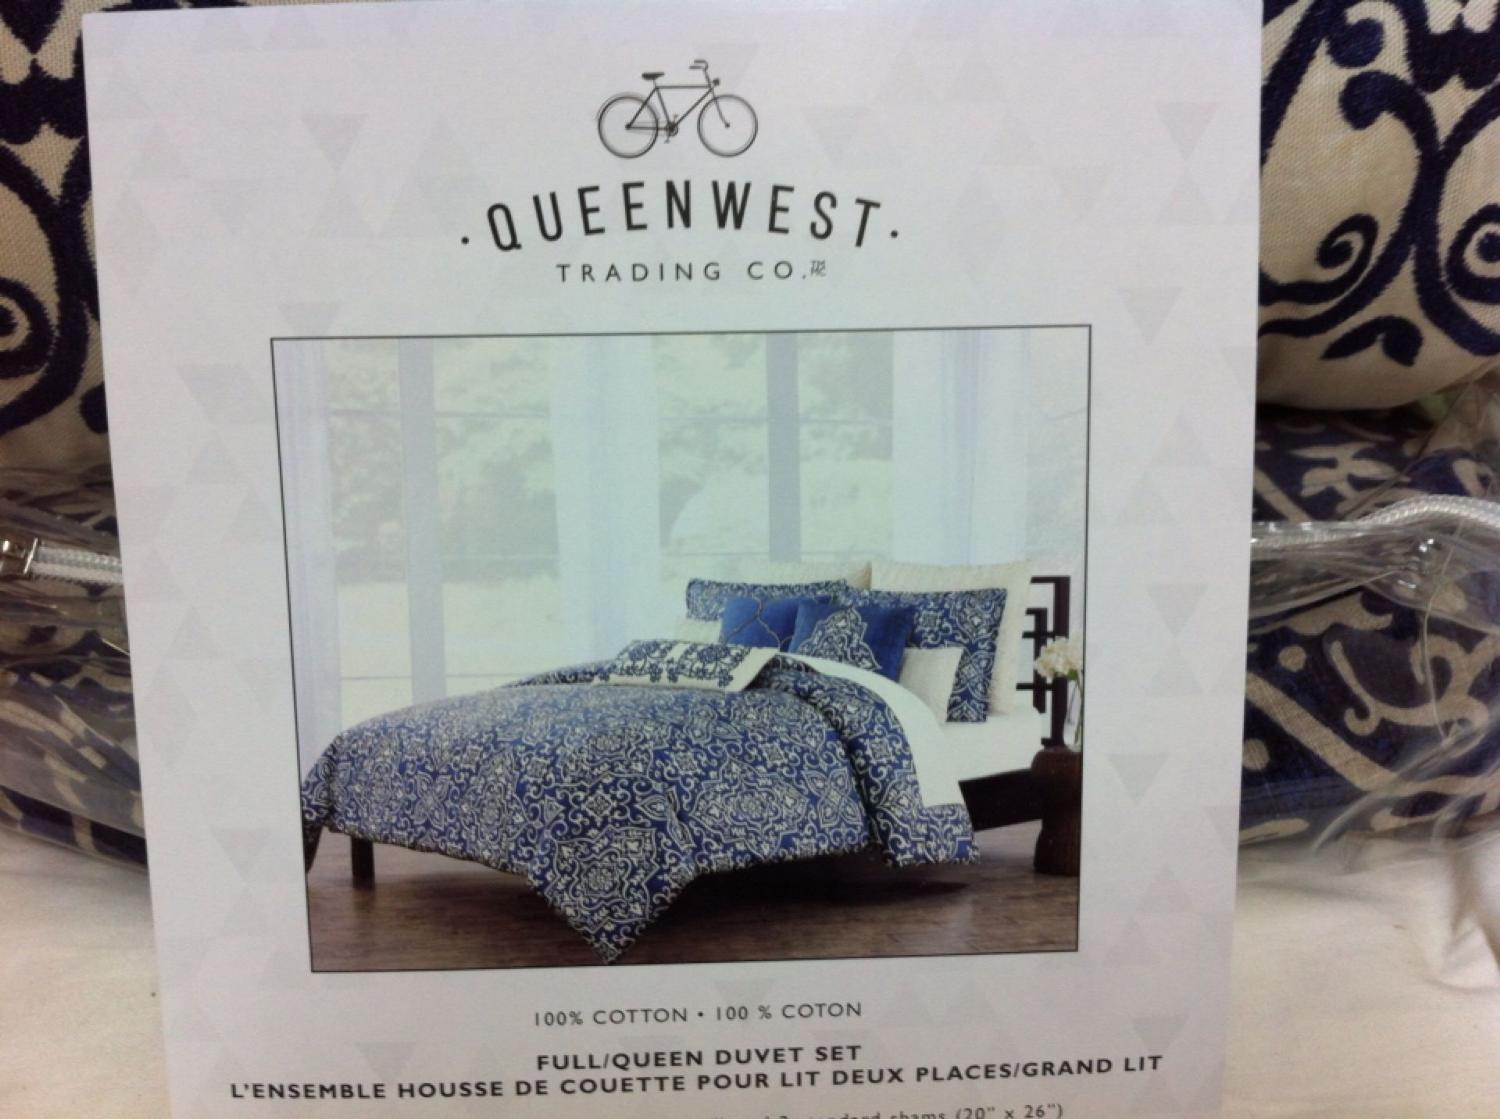 find more now 30 new in pkg queen duvet set fr queen west trading co duvet cover 90 x 96. Black Bedroom Furniture Sets. Home Design Ideas